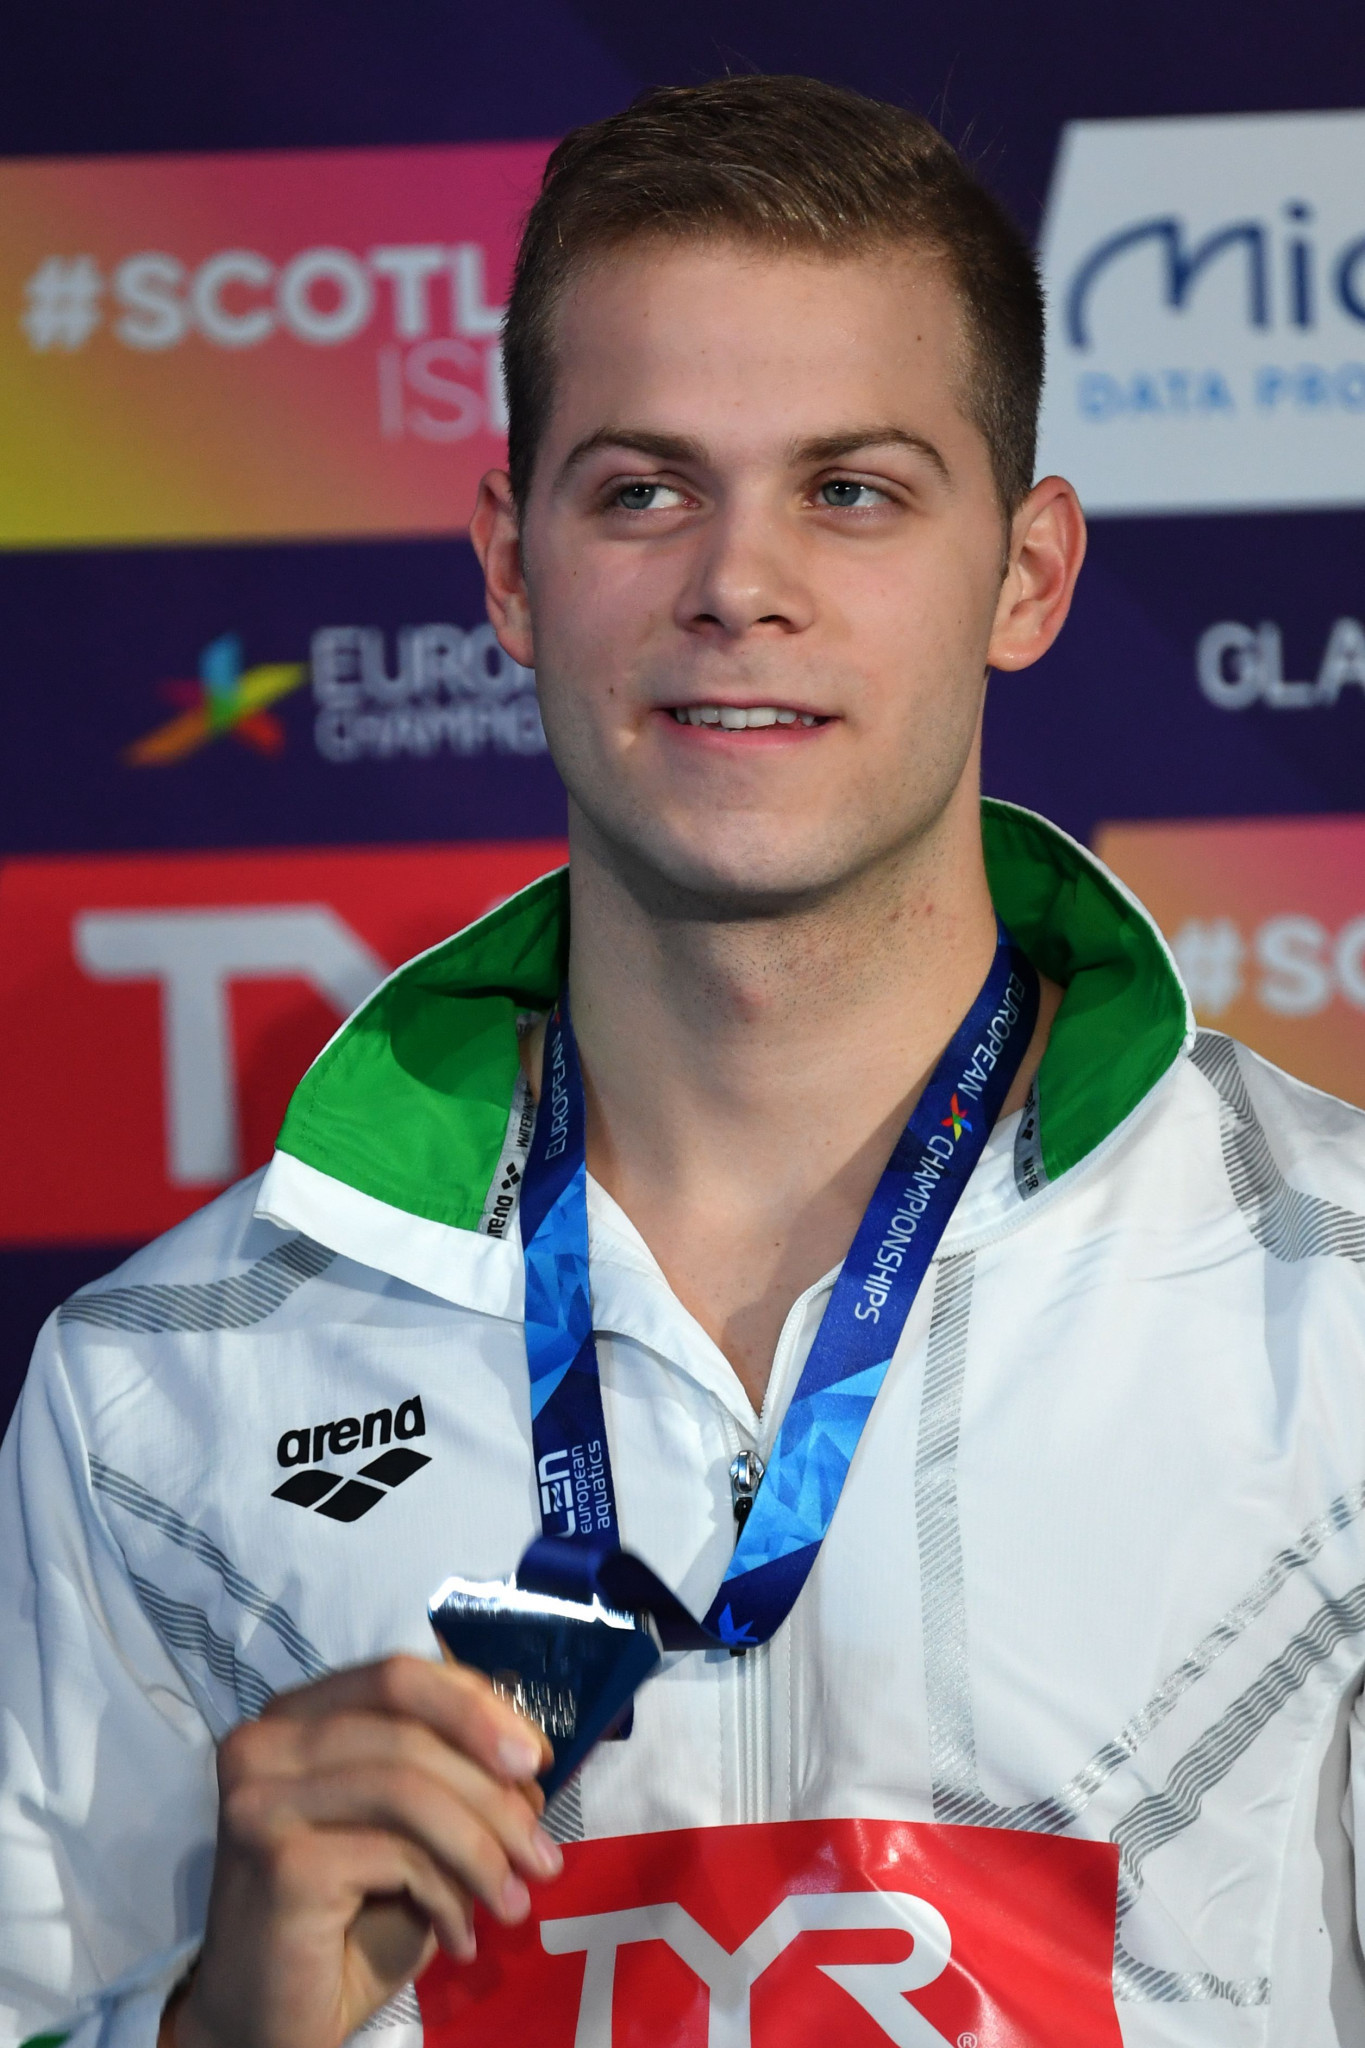 Hungarian swimmer Kenderesi arrested in Gwangju after sexual harassment allegations